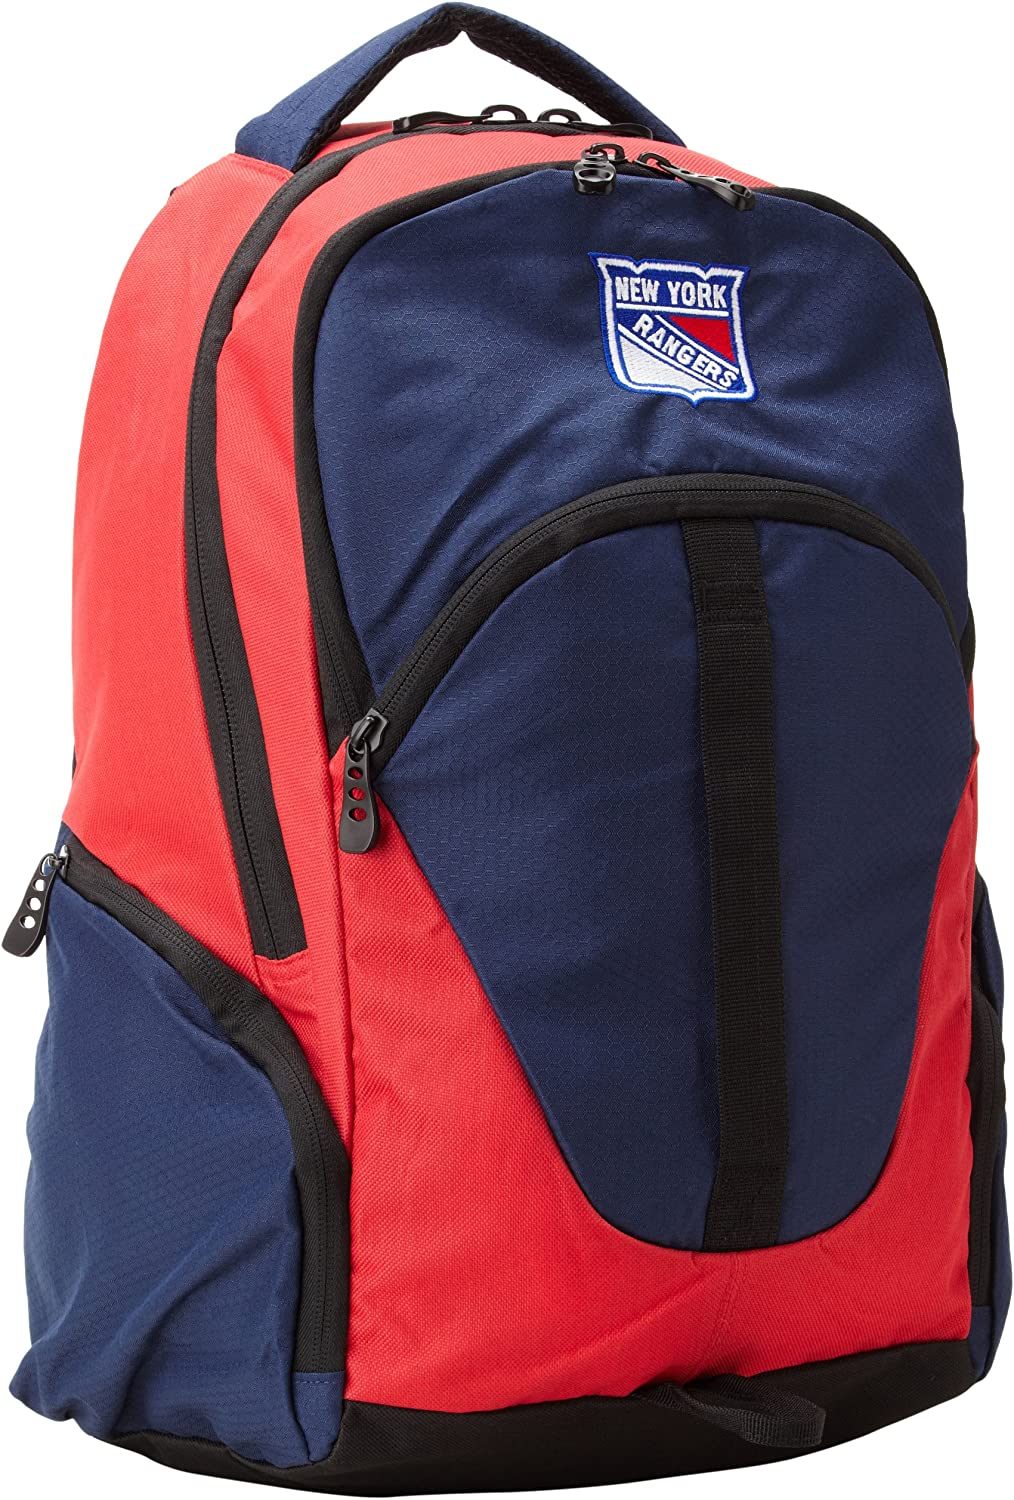 NHL New York Backpack Rangers Max 46% OFF Super special price